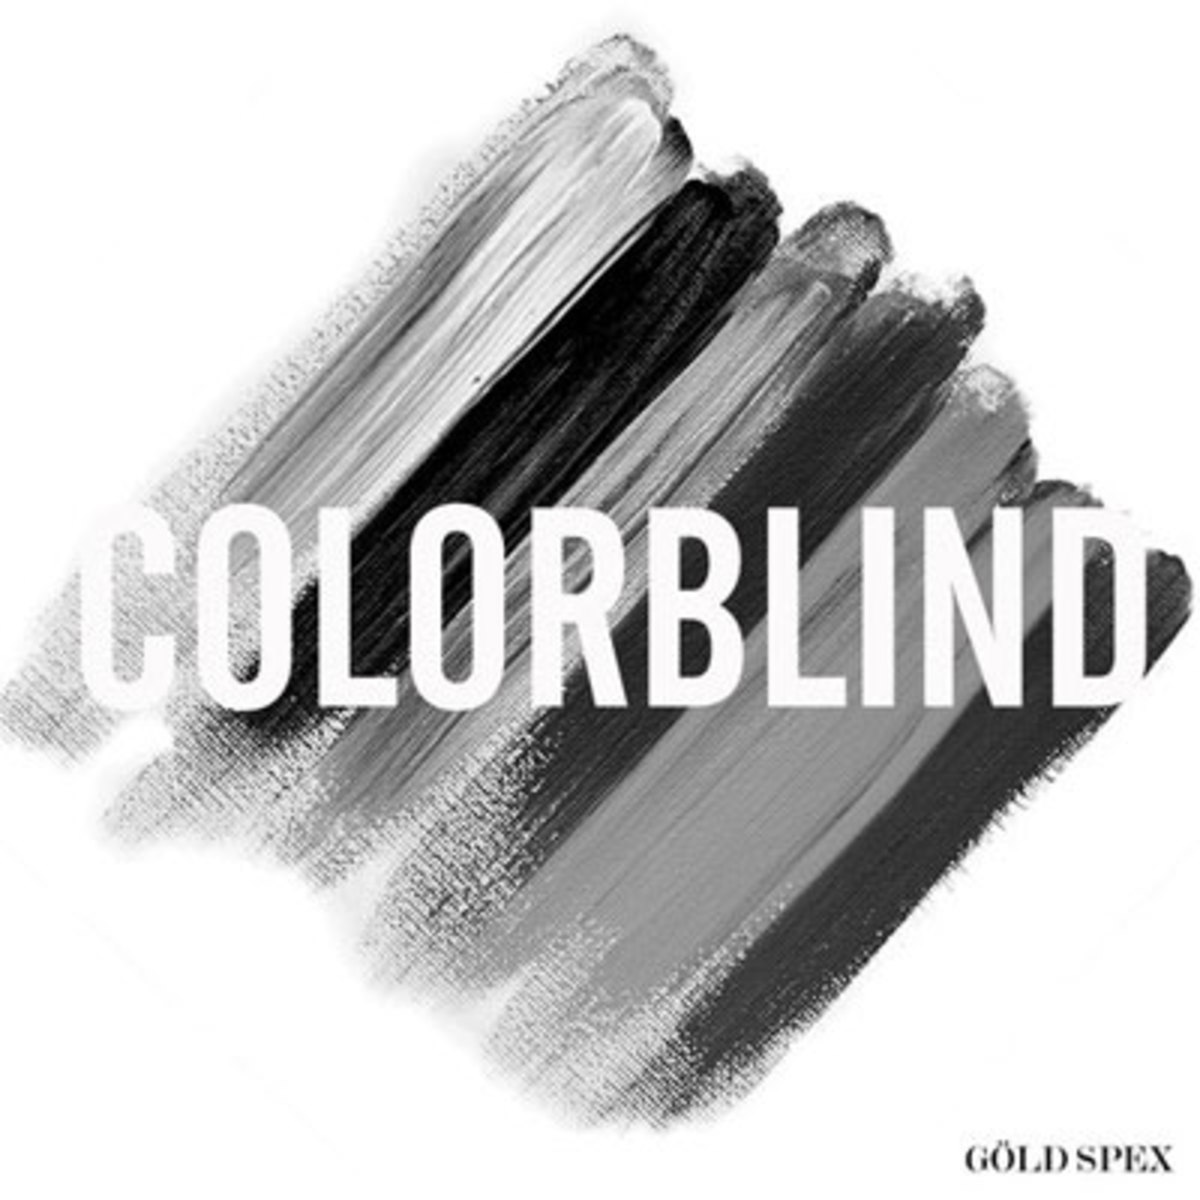 goldspex-colorblind.jpg